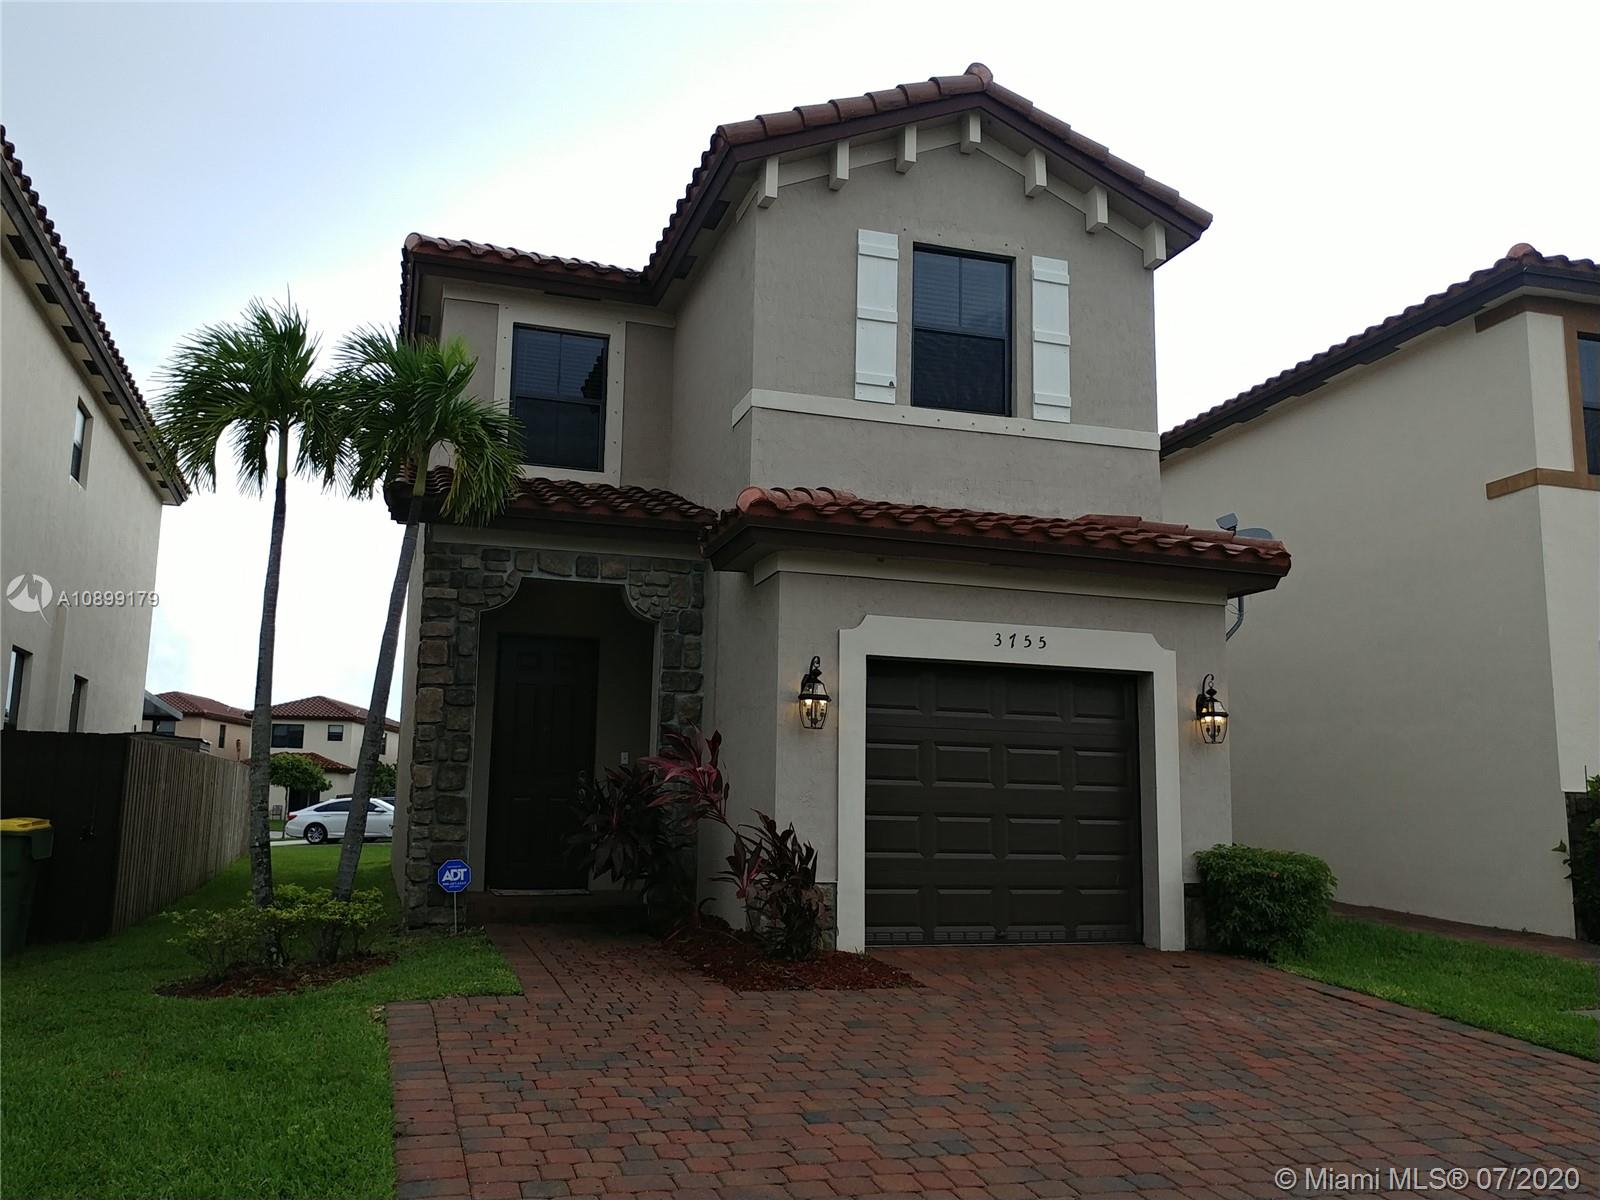 3755 NE 1st St Property Photo - Homestead, FL real estate listing